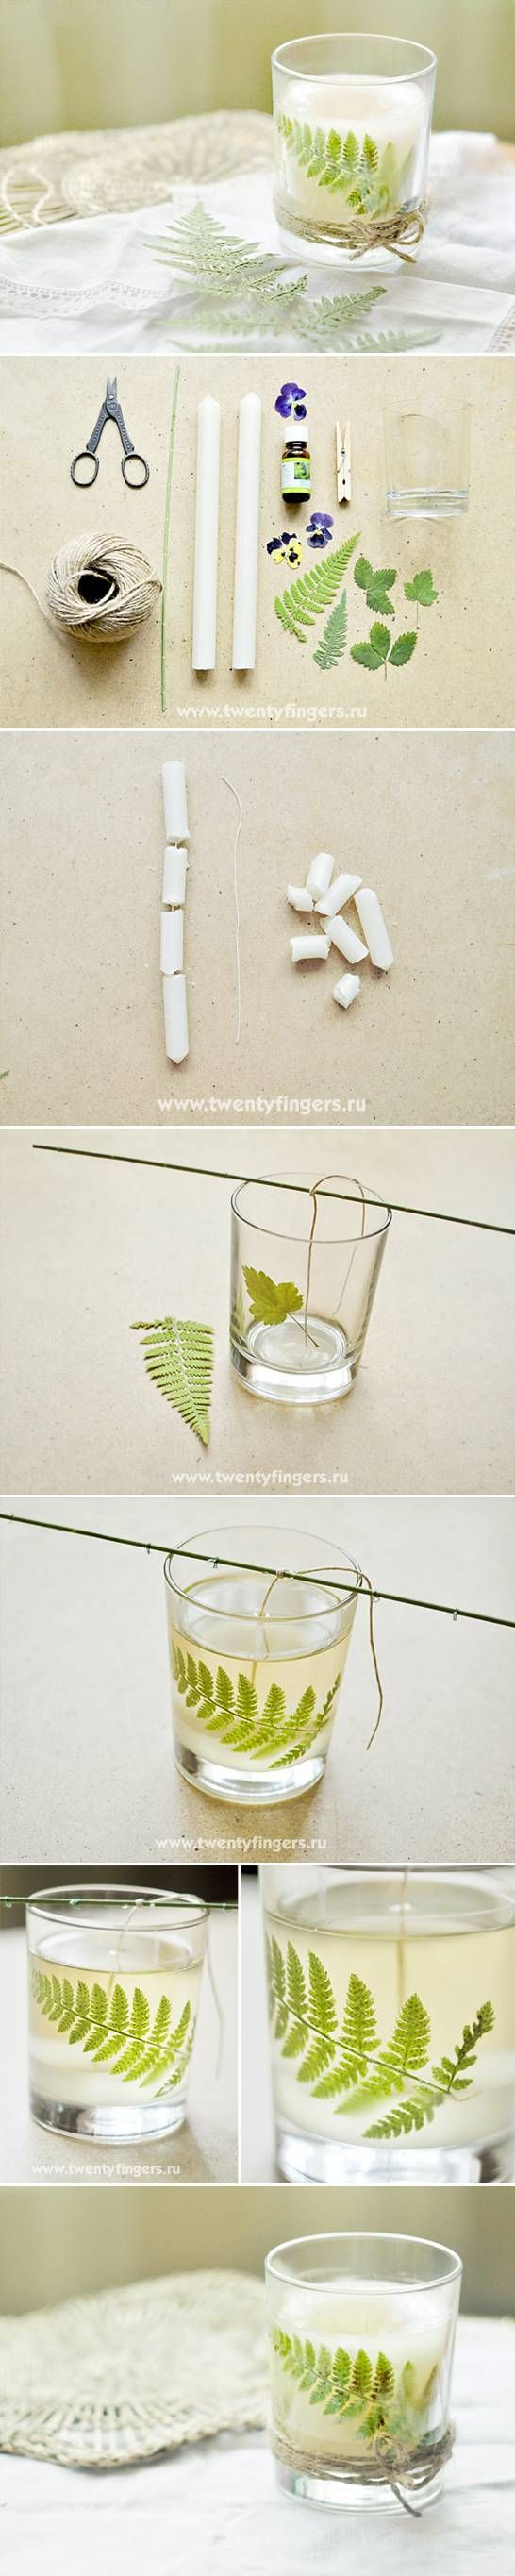 DIY Smell of the Forest Candle